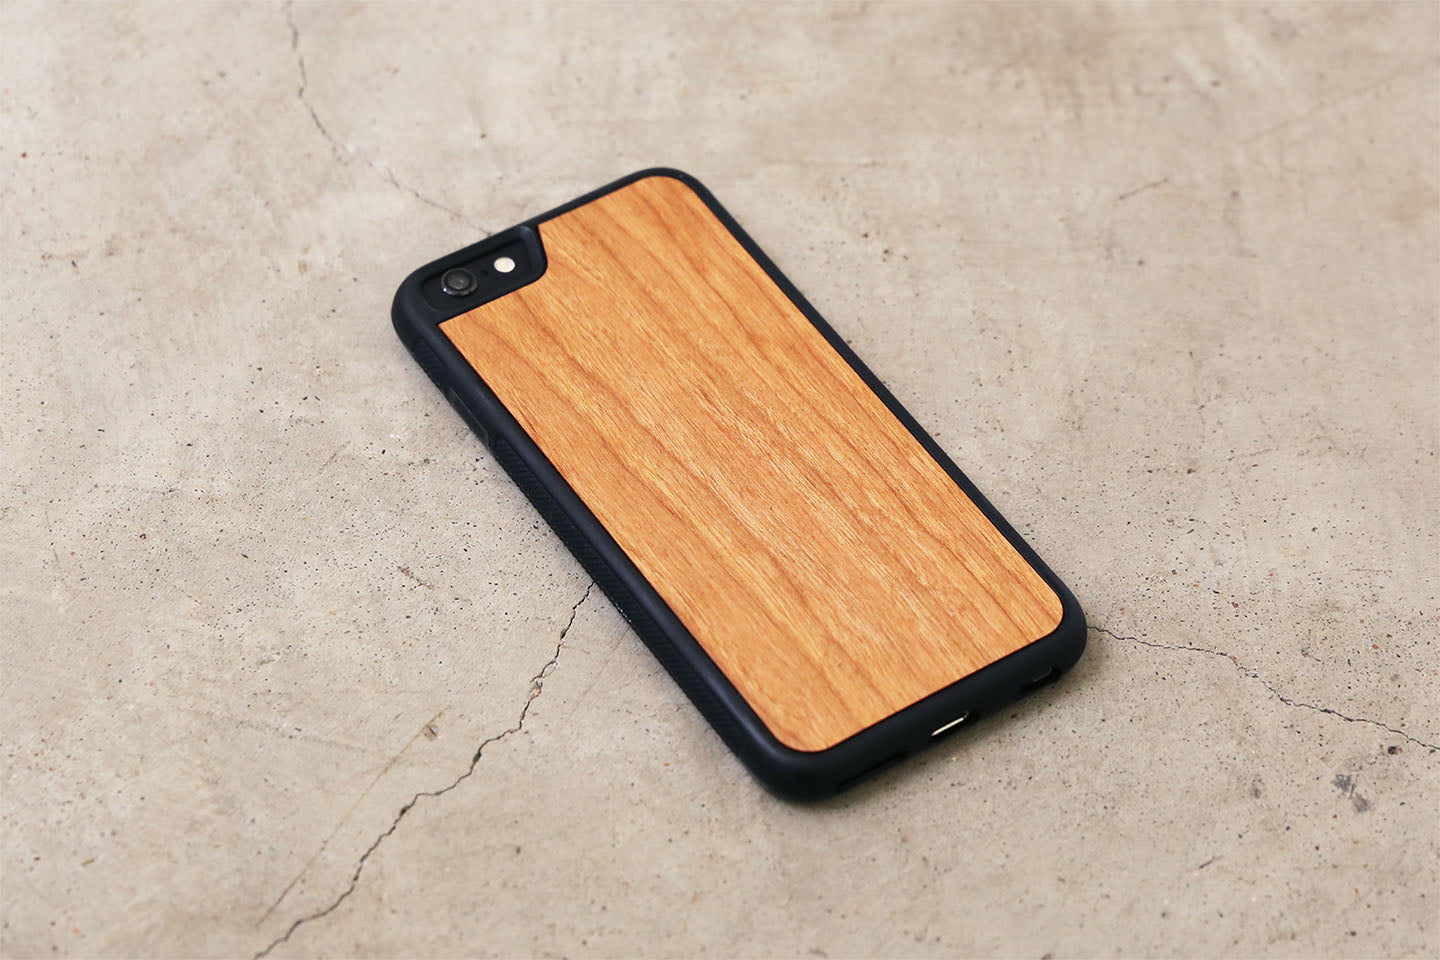 Real Wood iPhone Case Cherry 5 5S 6 6S 6 Plus 7